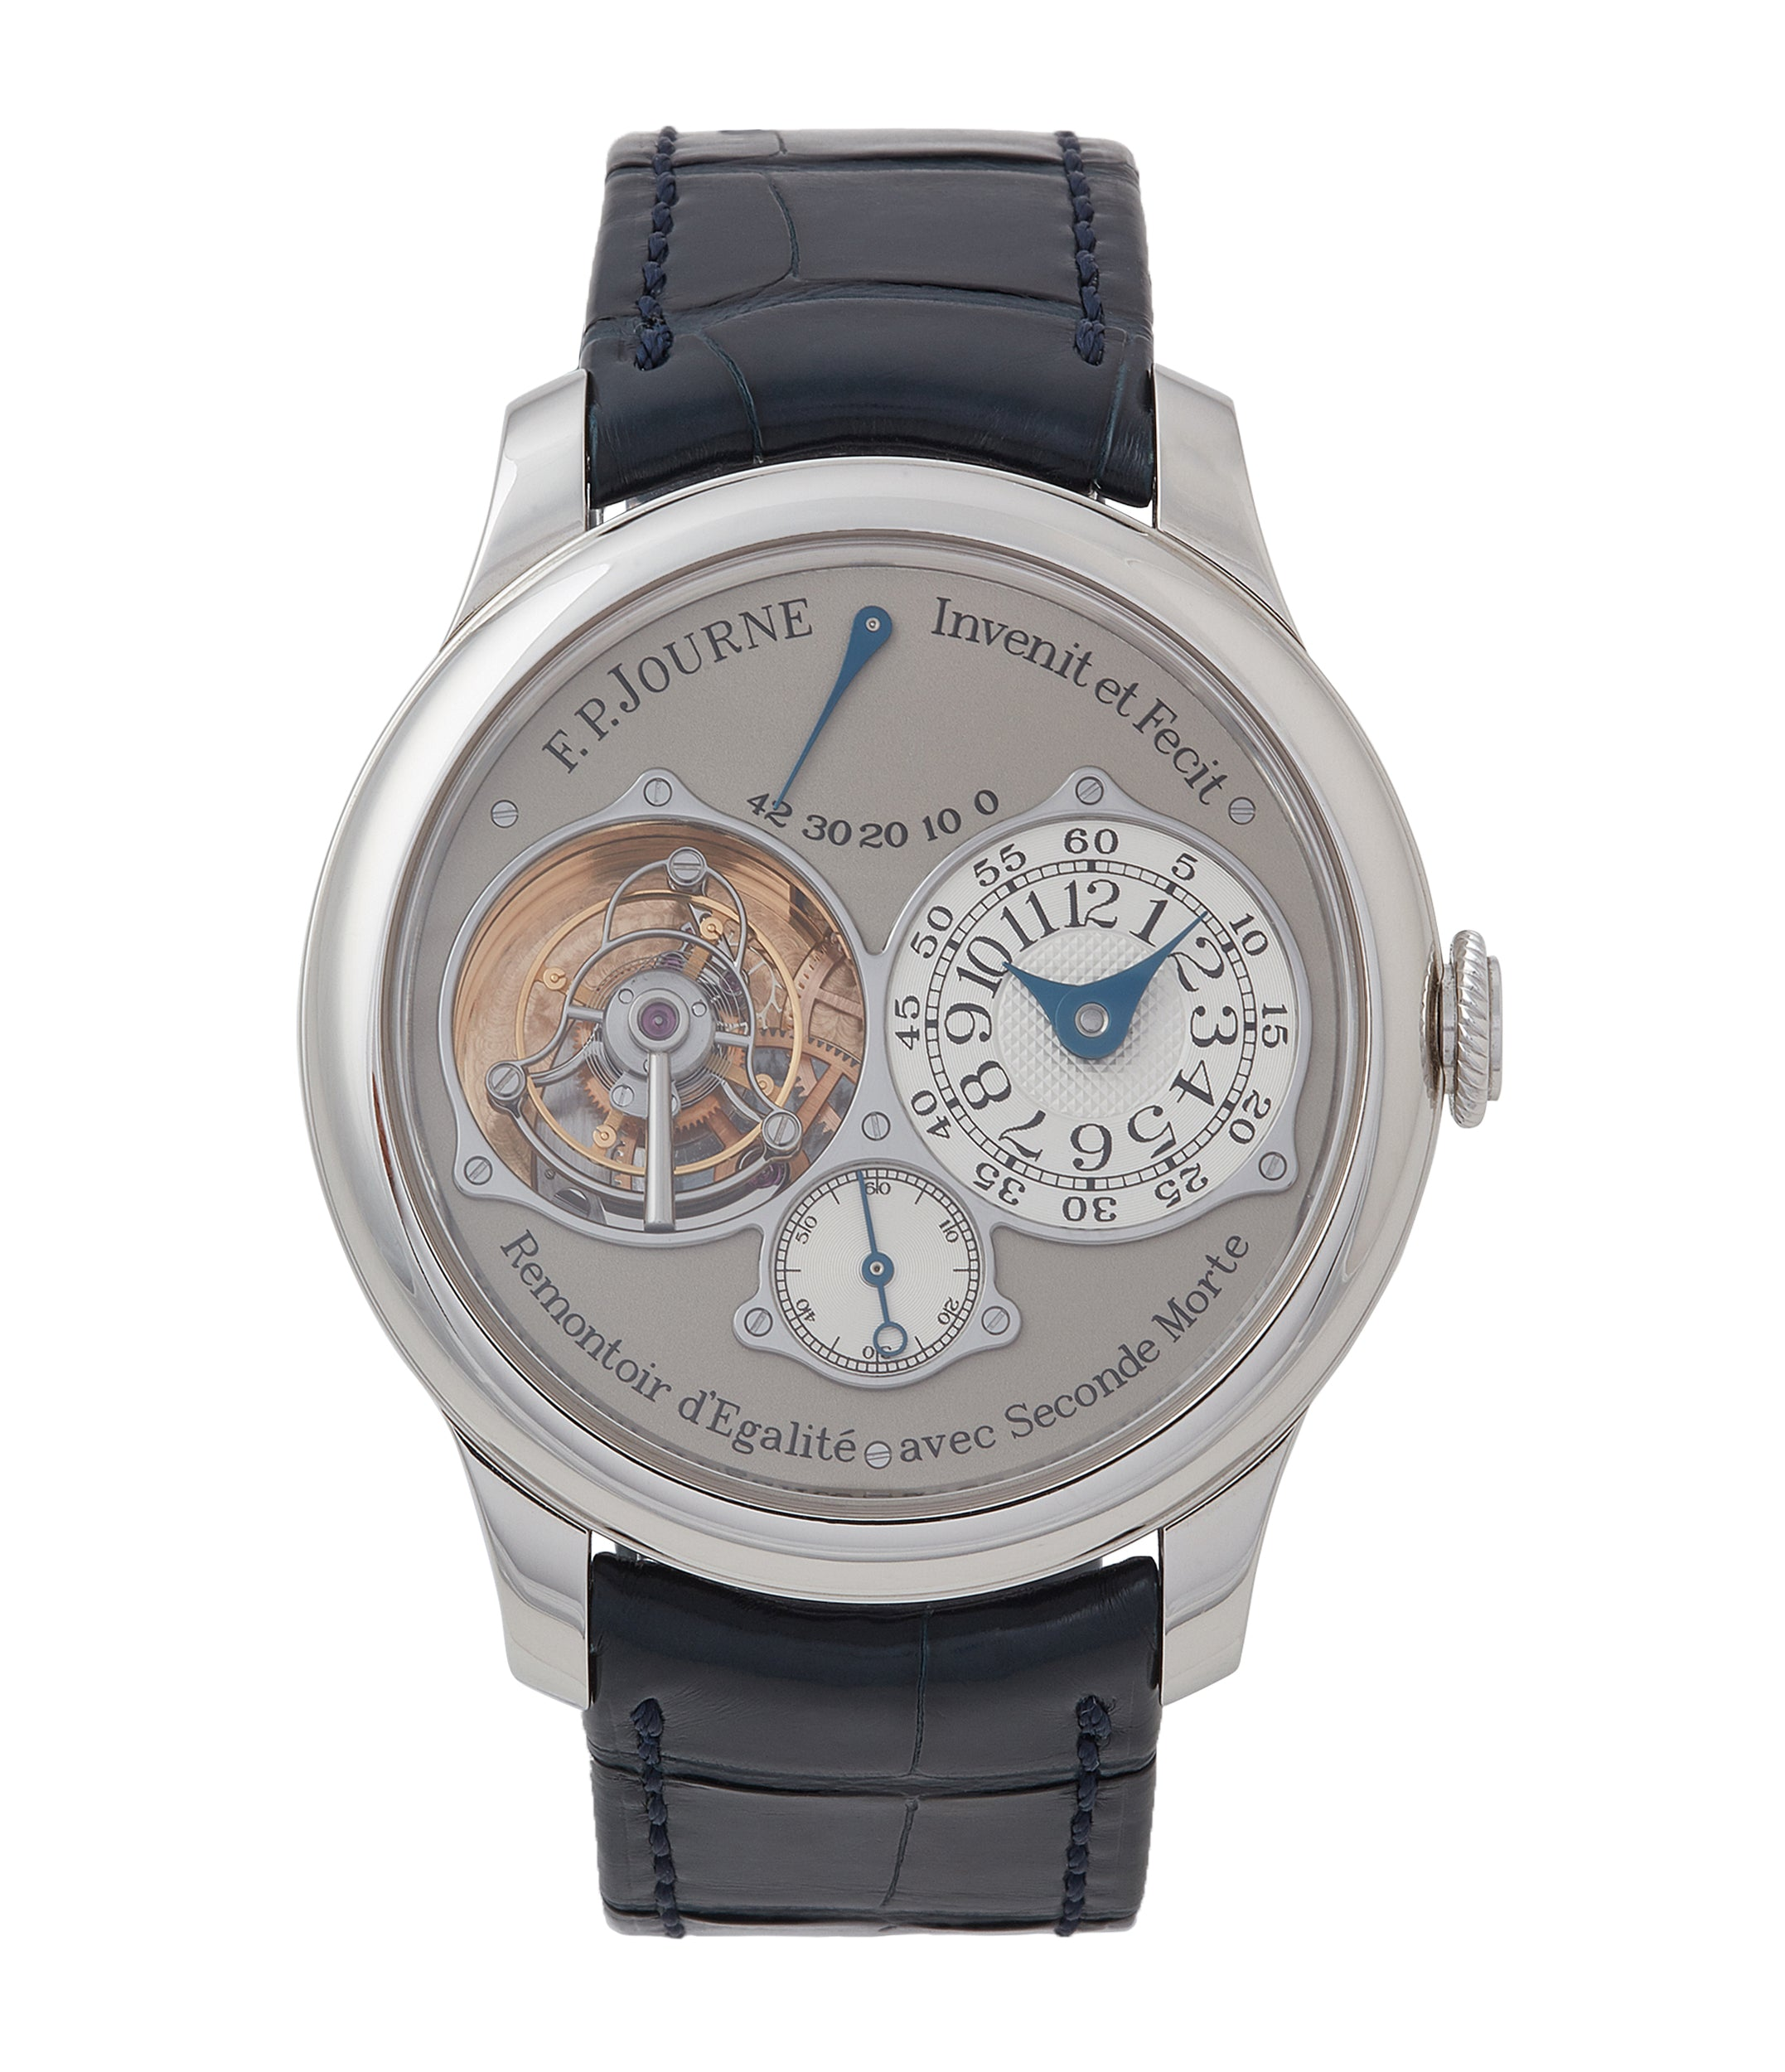 buy F. P. Journe Tourbillon Souverain TN dead-beat seconds 40mm platinum pre-owned watch for sale online at A Collected Man London UK specialist of rare watches